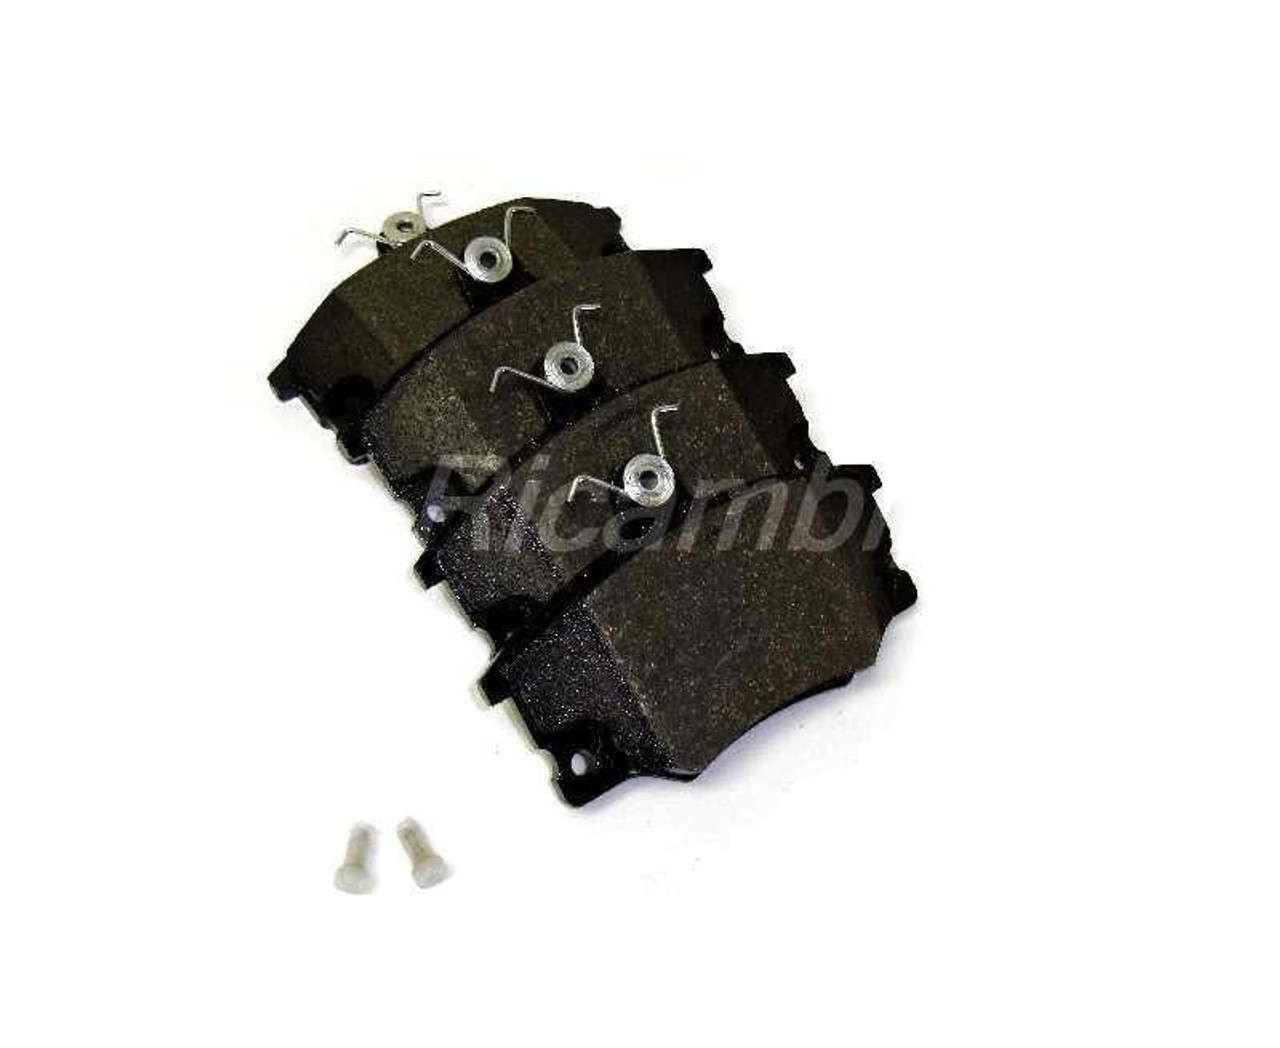 Front Brake Pads - 1985 1/2 only